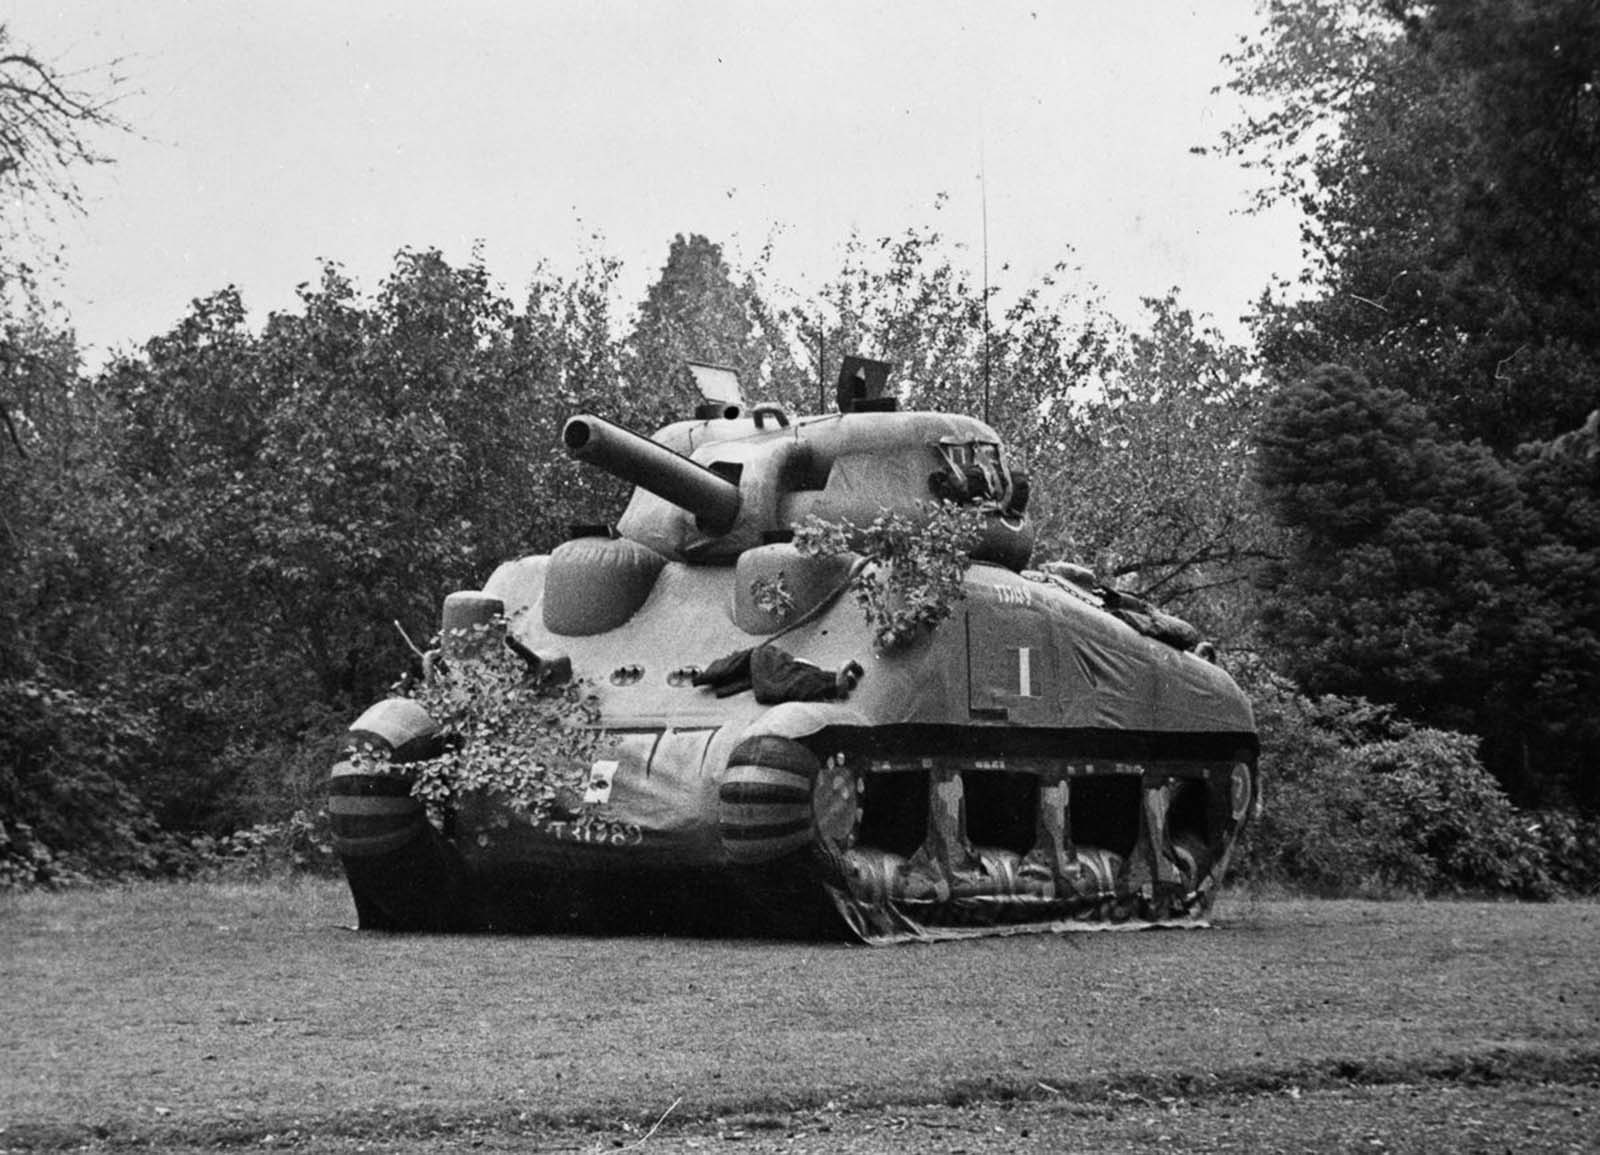 An inflatable Sherman tank, one of many dummy tanks made to deceive the enemy. Dummy tanks were used as part of Operation Fortitude, the scheme to convince the Germans that the D-Day landings would be at Calais rather than Normandy.